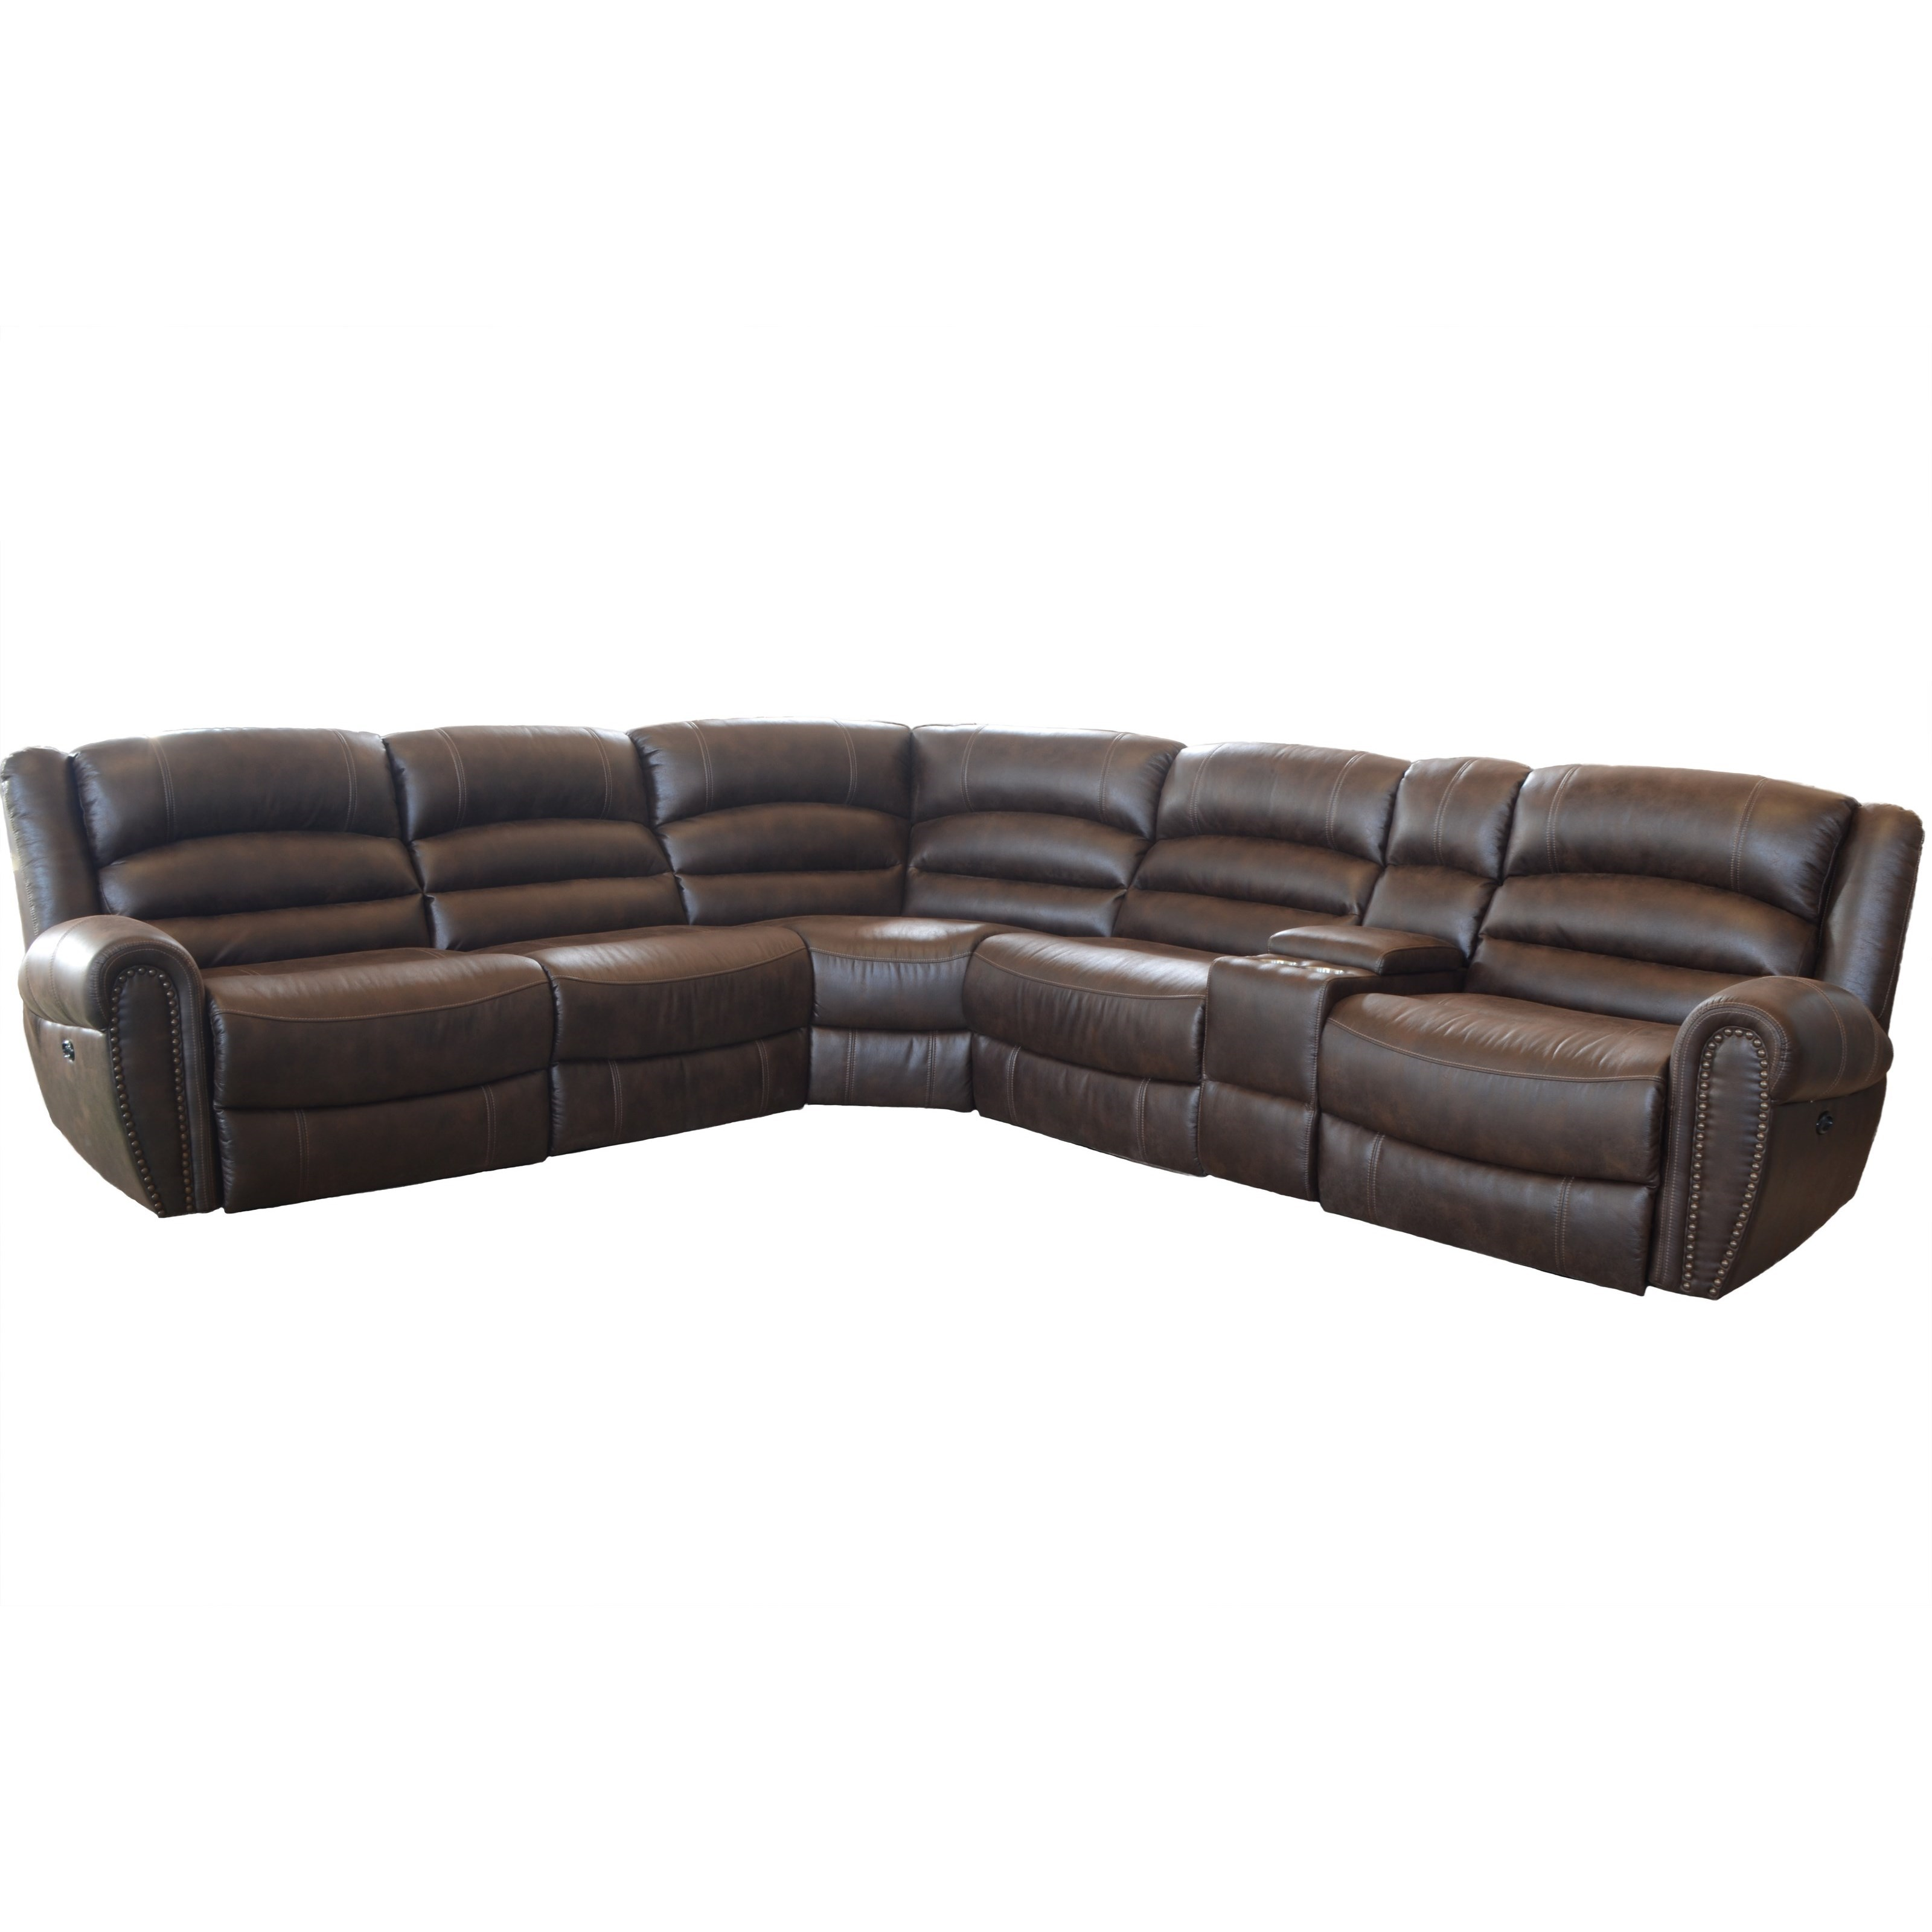 6-Piece Power Reclining Sectional Sofa